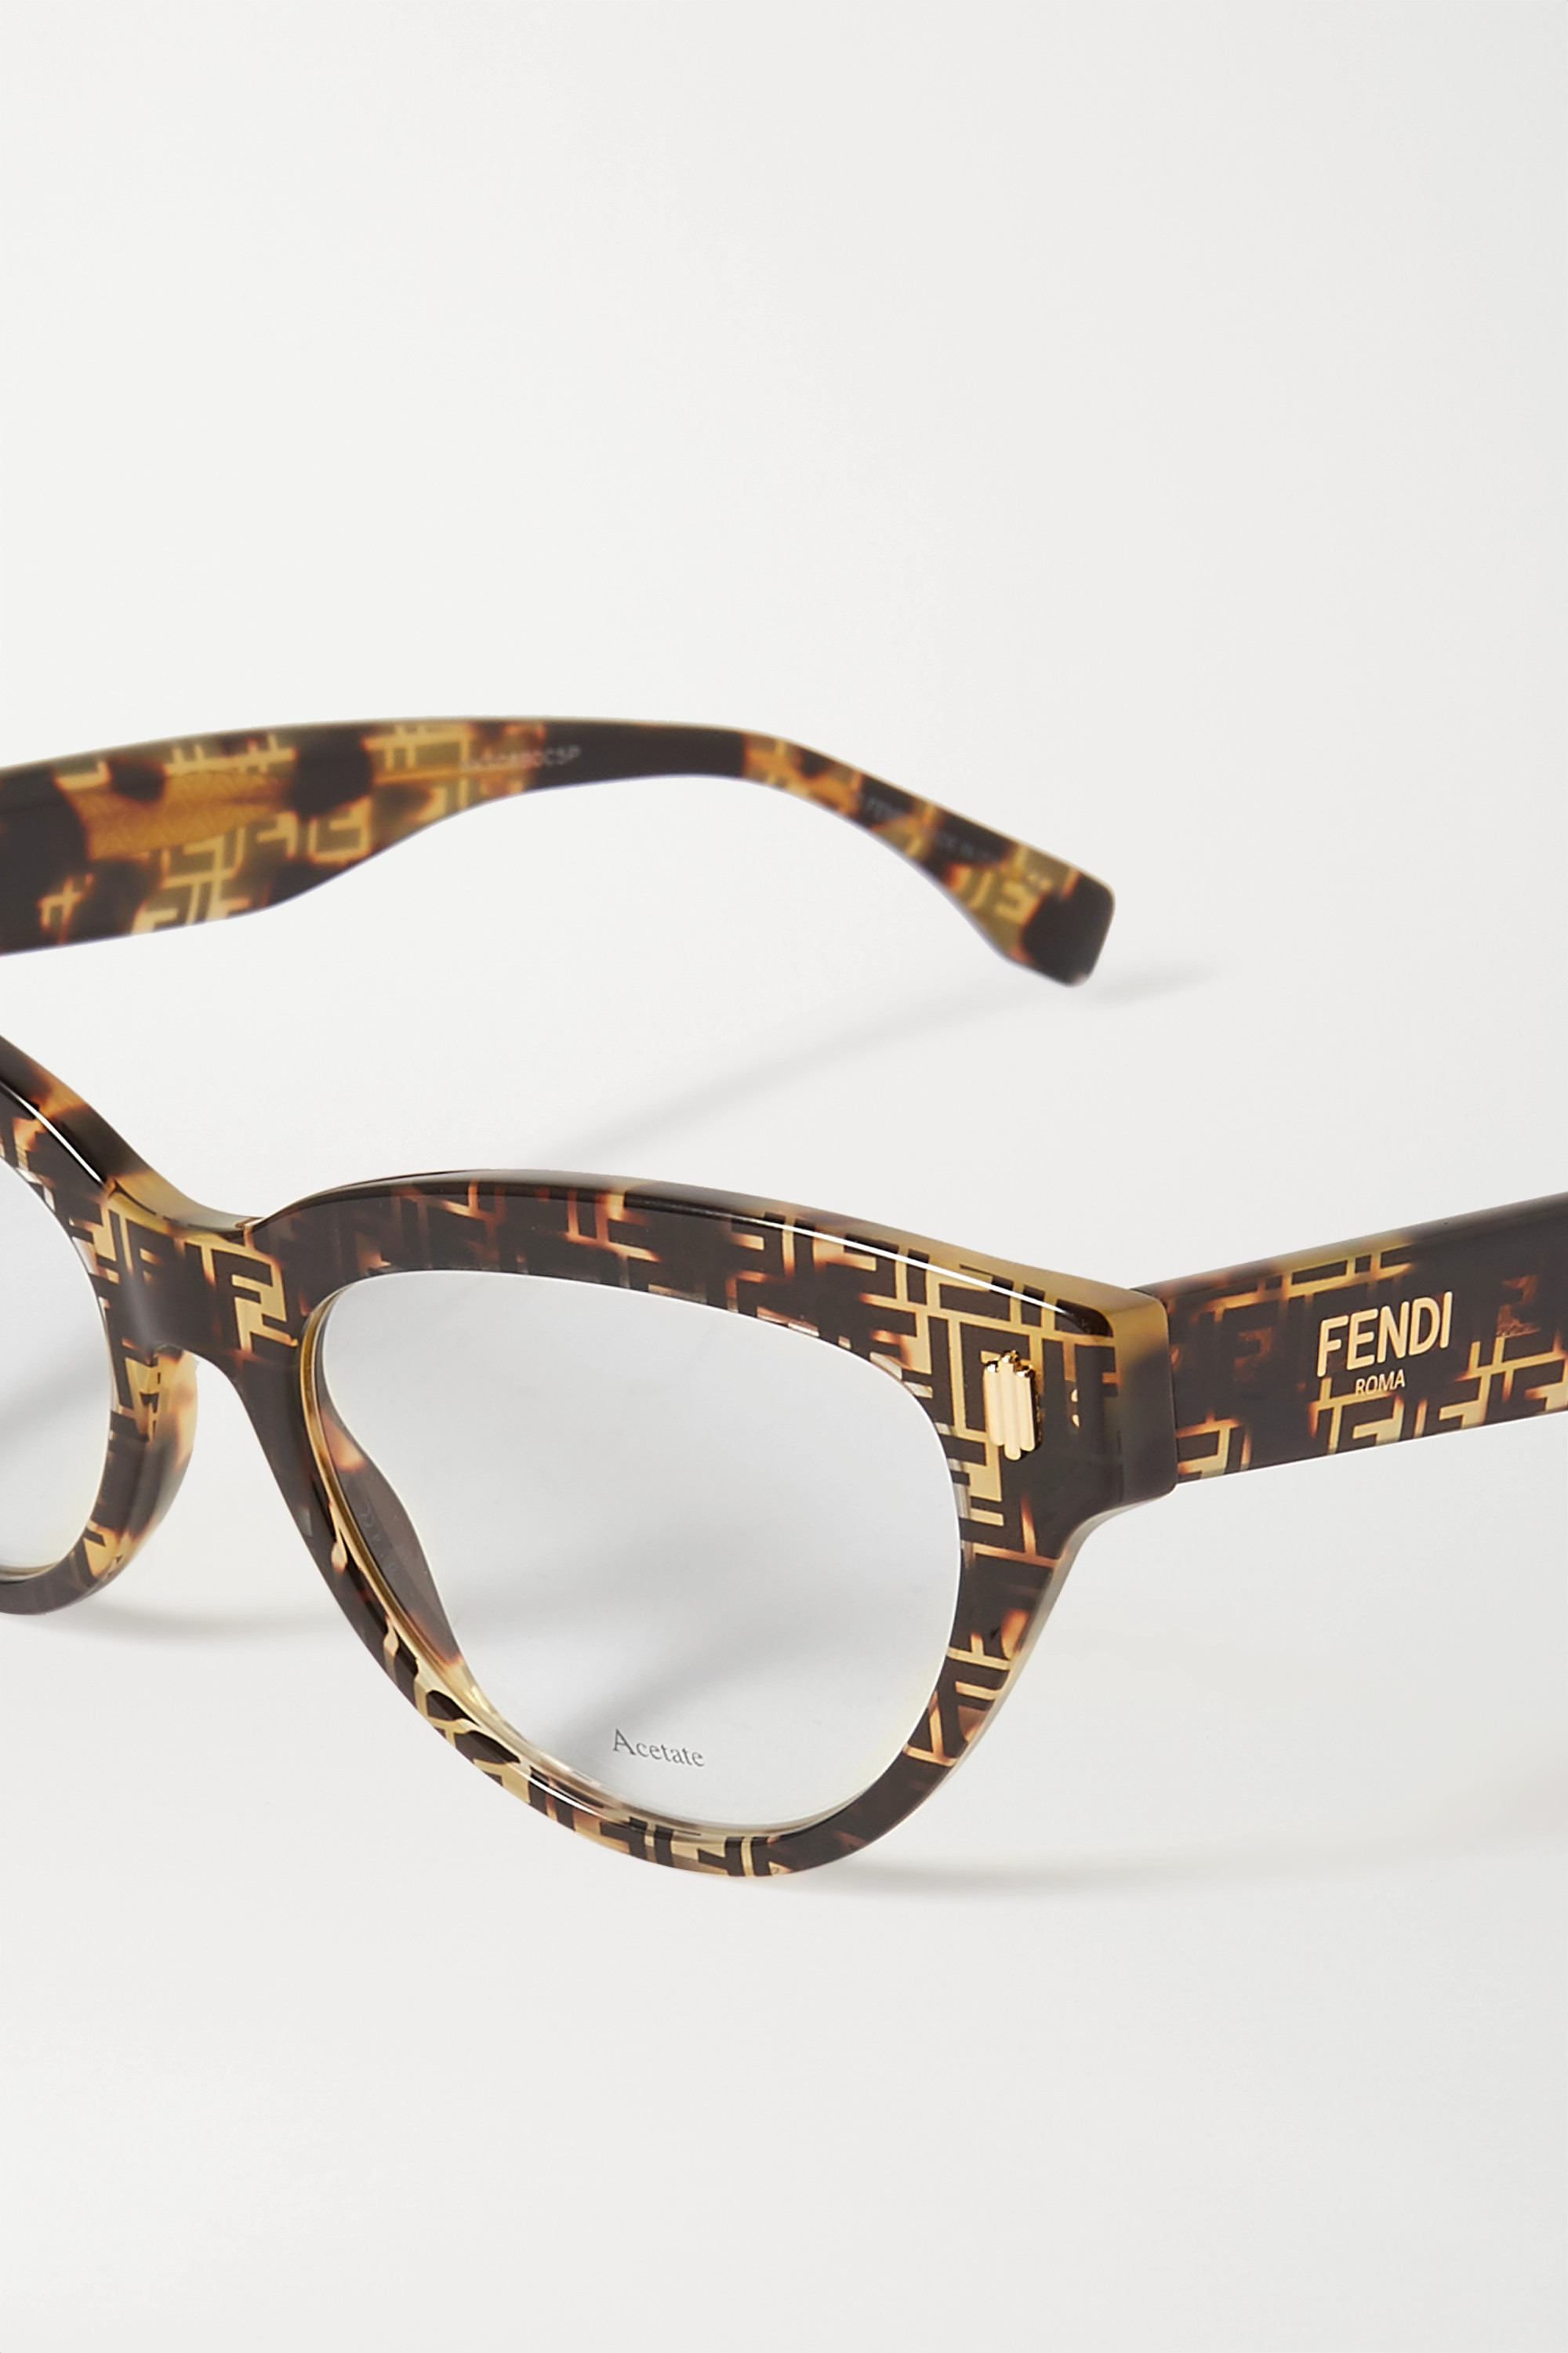 FENDI Cat-eye tortoiseshell acetate optical glasses